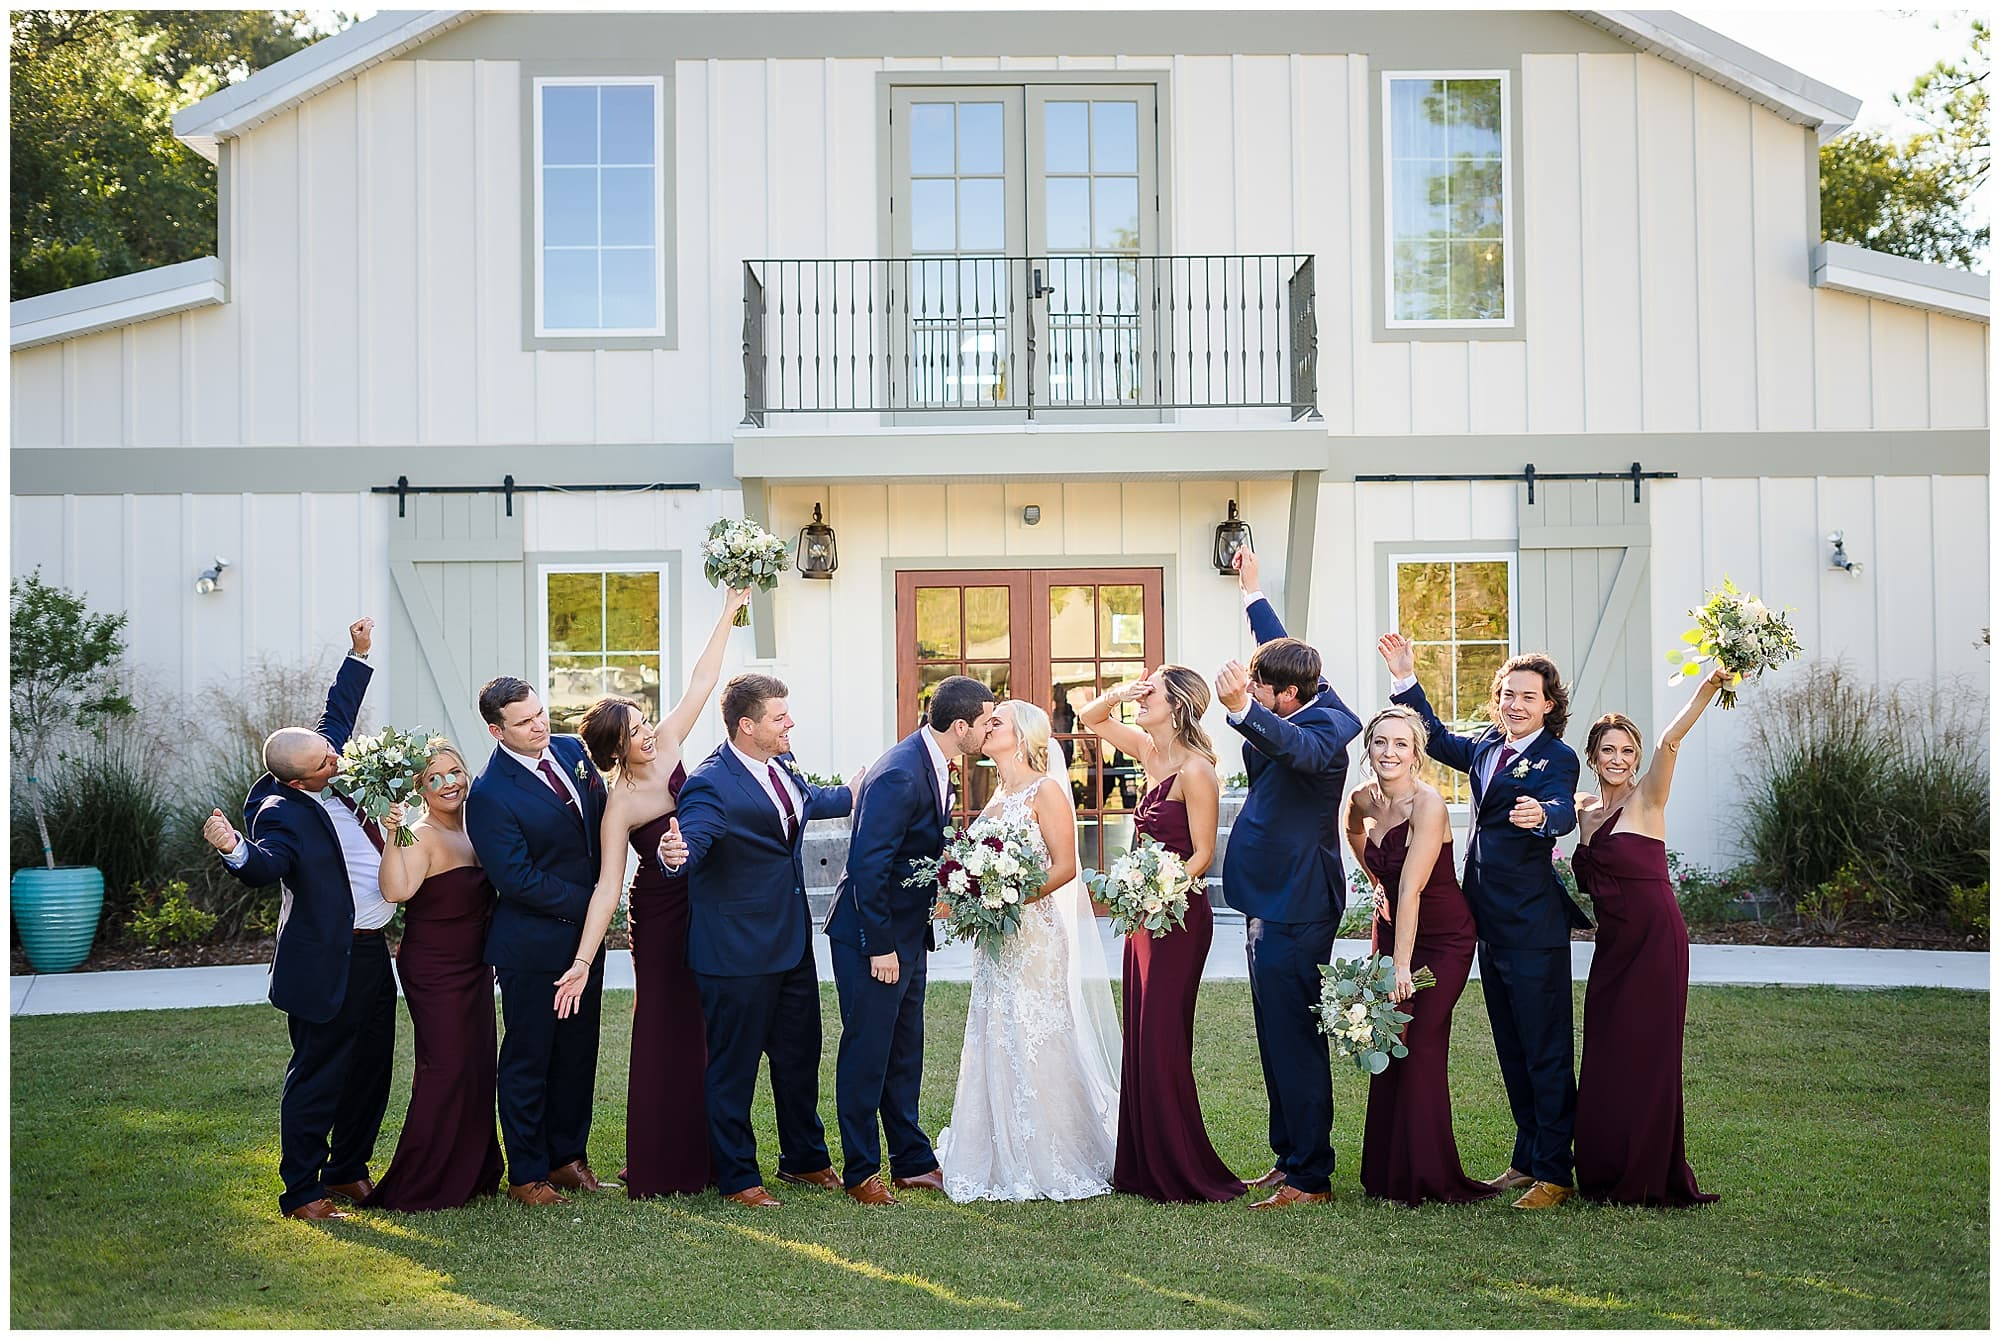 The Sadie Jane Wedding Venue bridal party cheering kissing couple